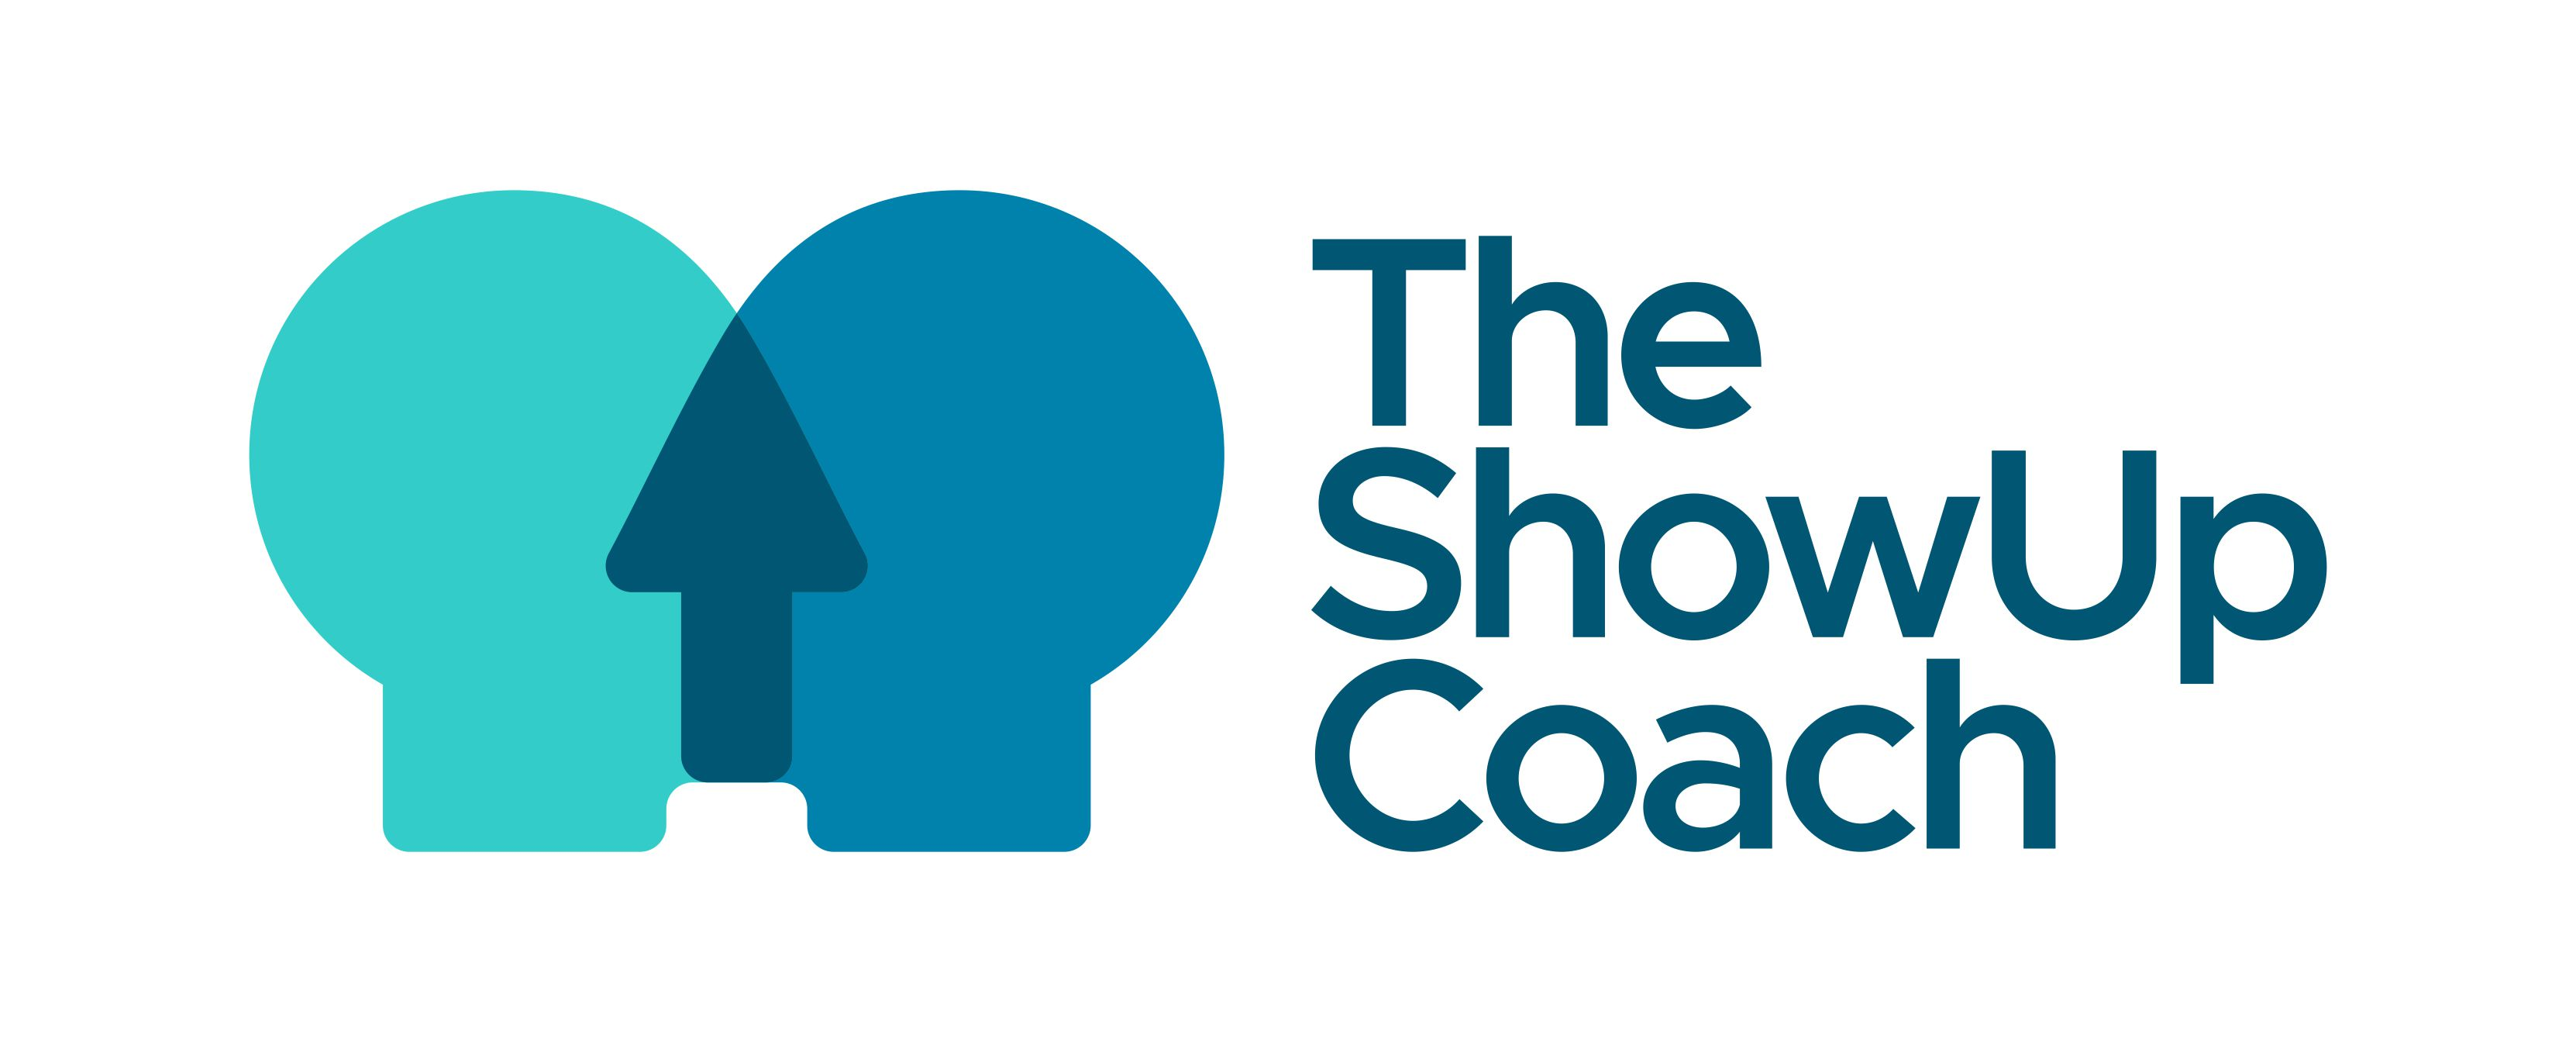 The Show Up Coach